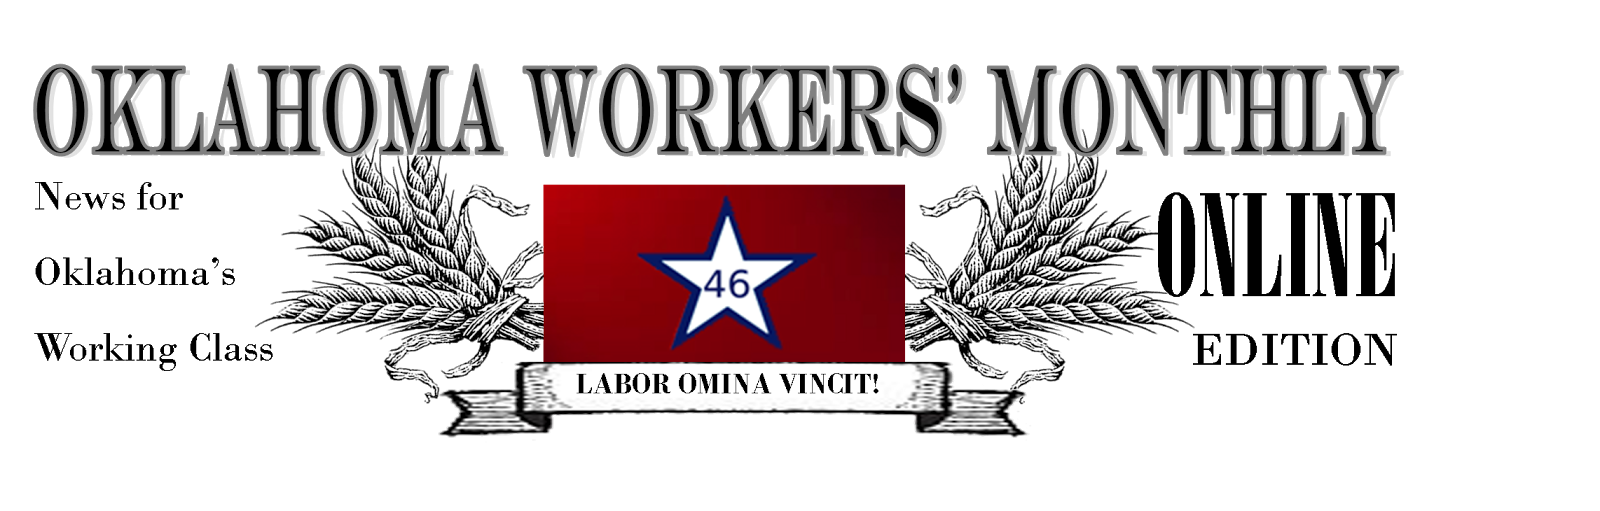 Oklahoma Workers' Monthly